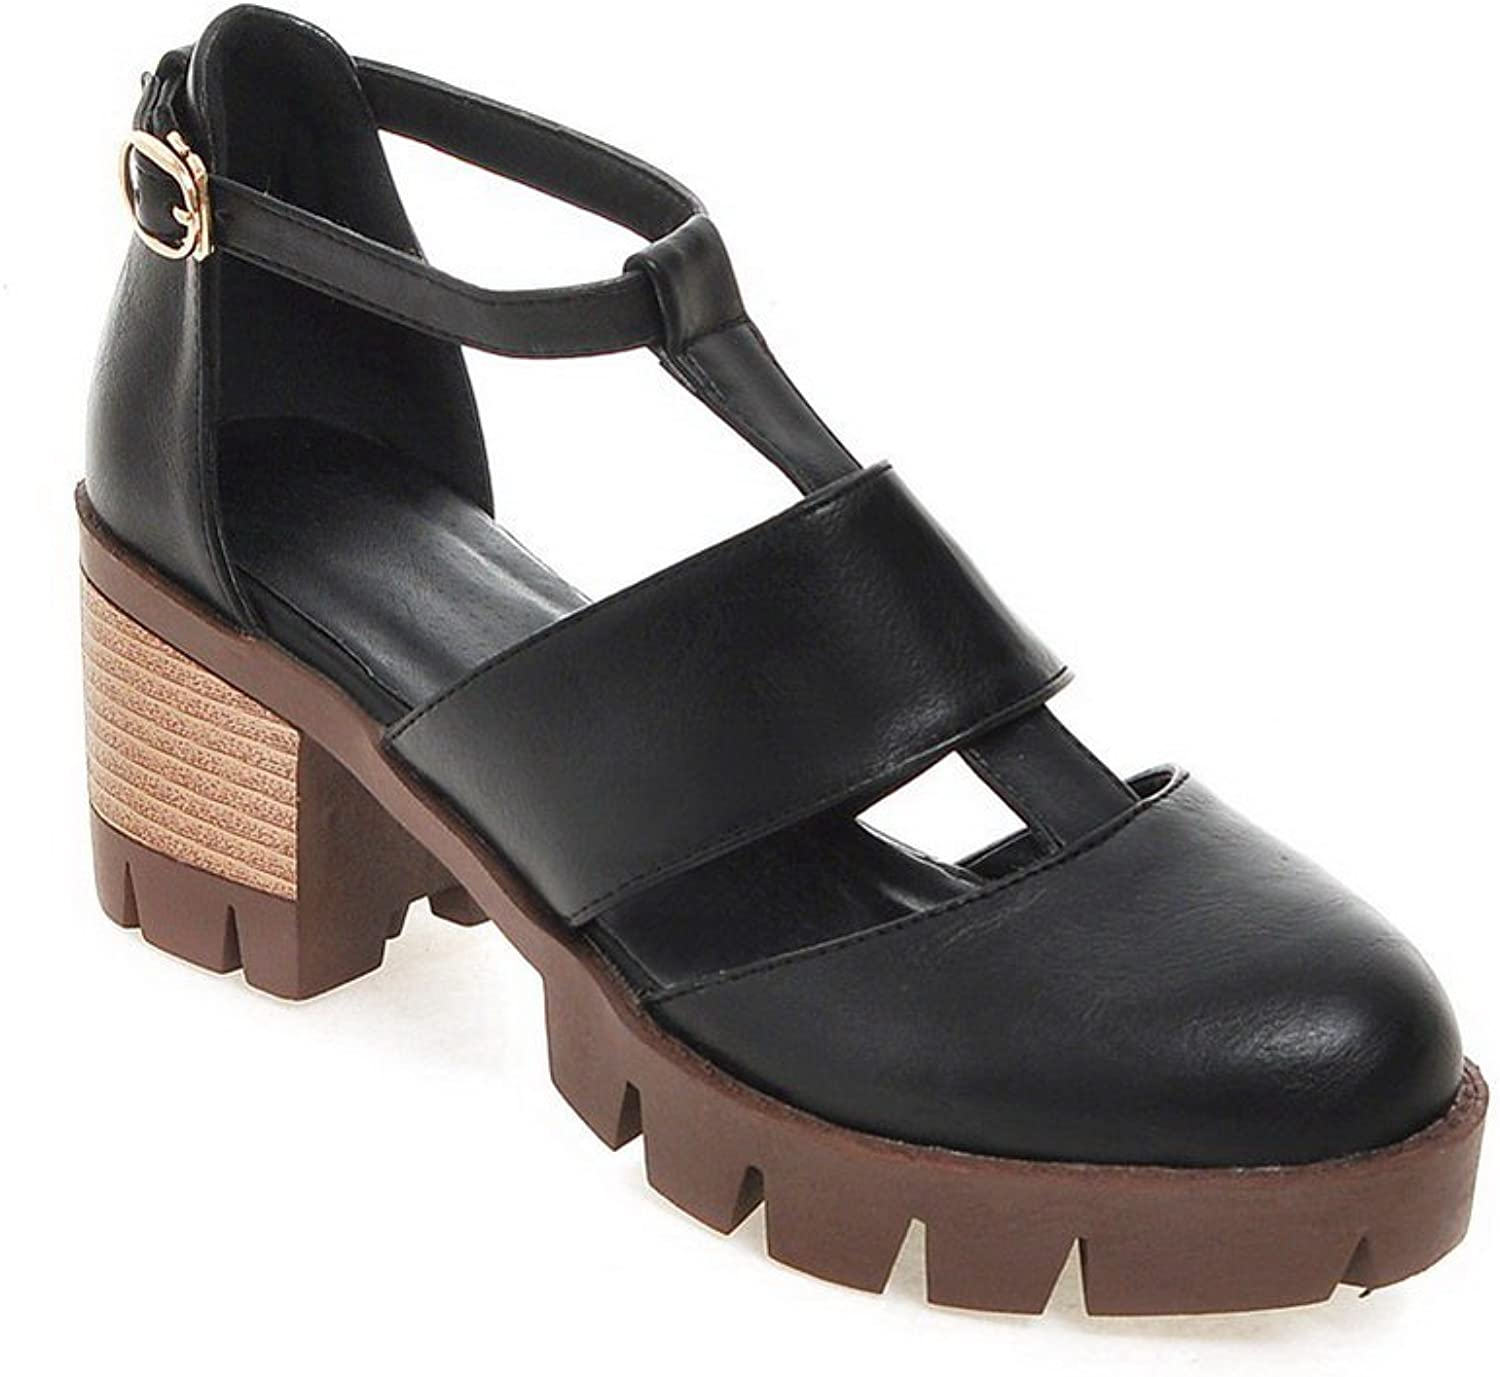 AN Womens Non-Marking Kitten-Heels Solid Urethane Sandals DIU00802